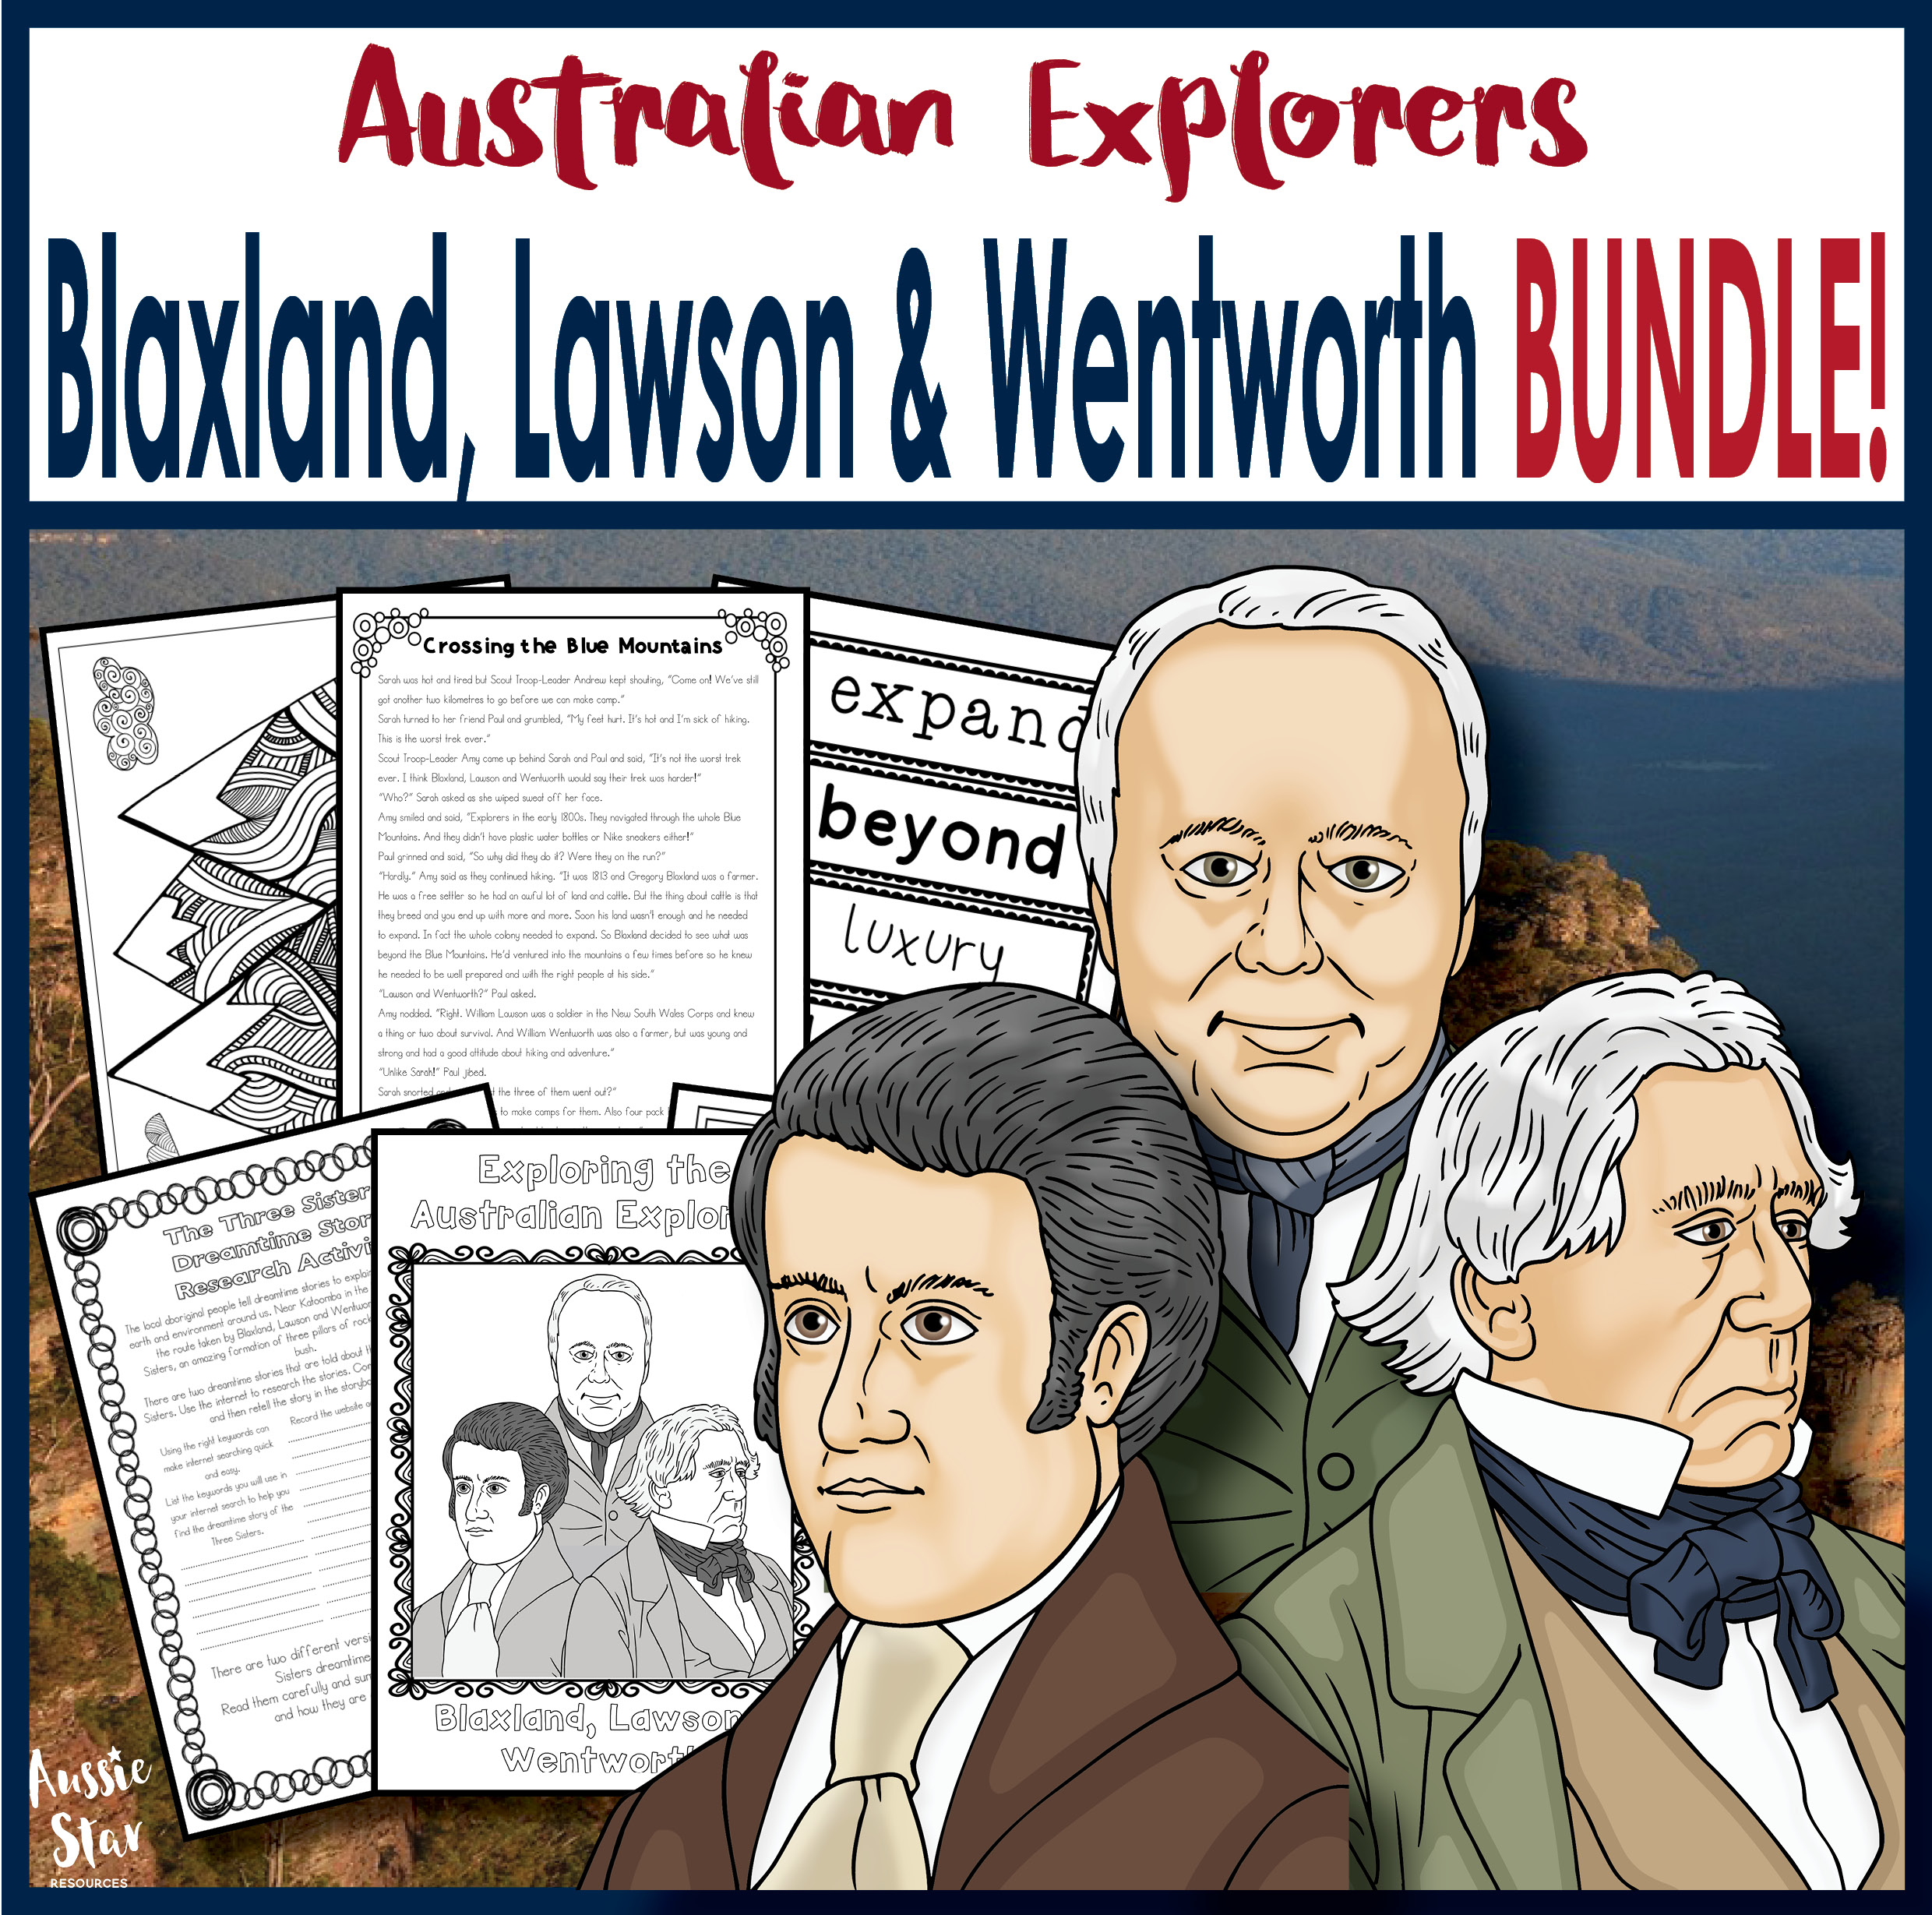 Blaxland, Lawson and Wentworth bundle cover